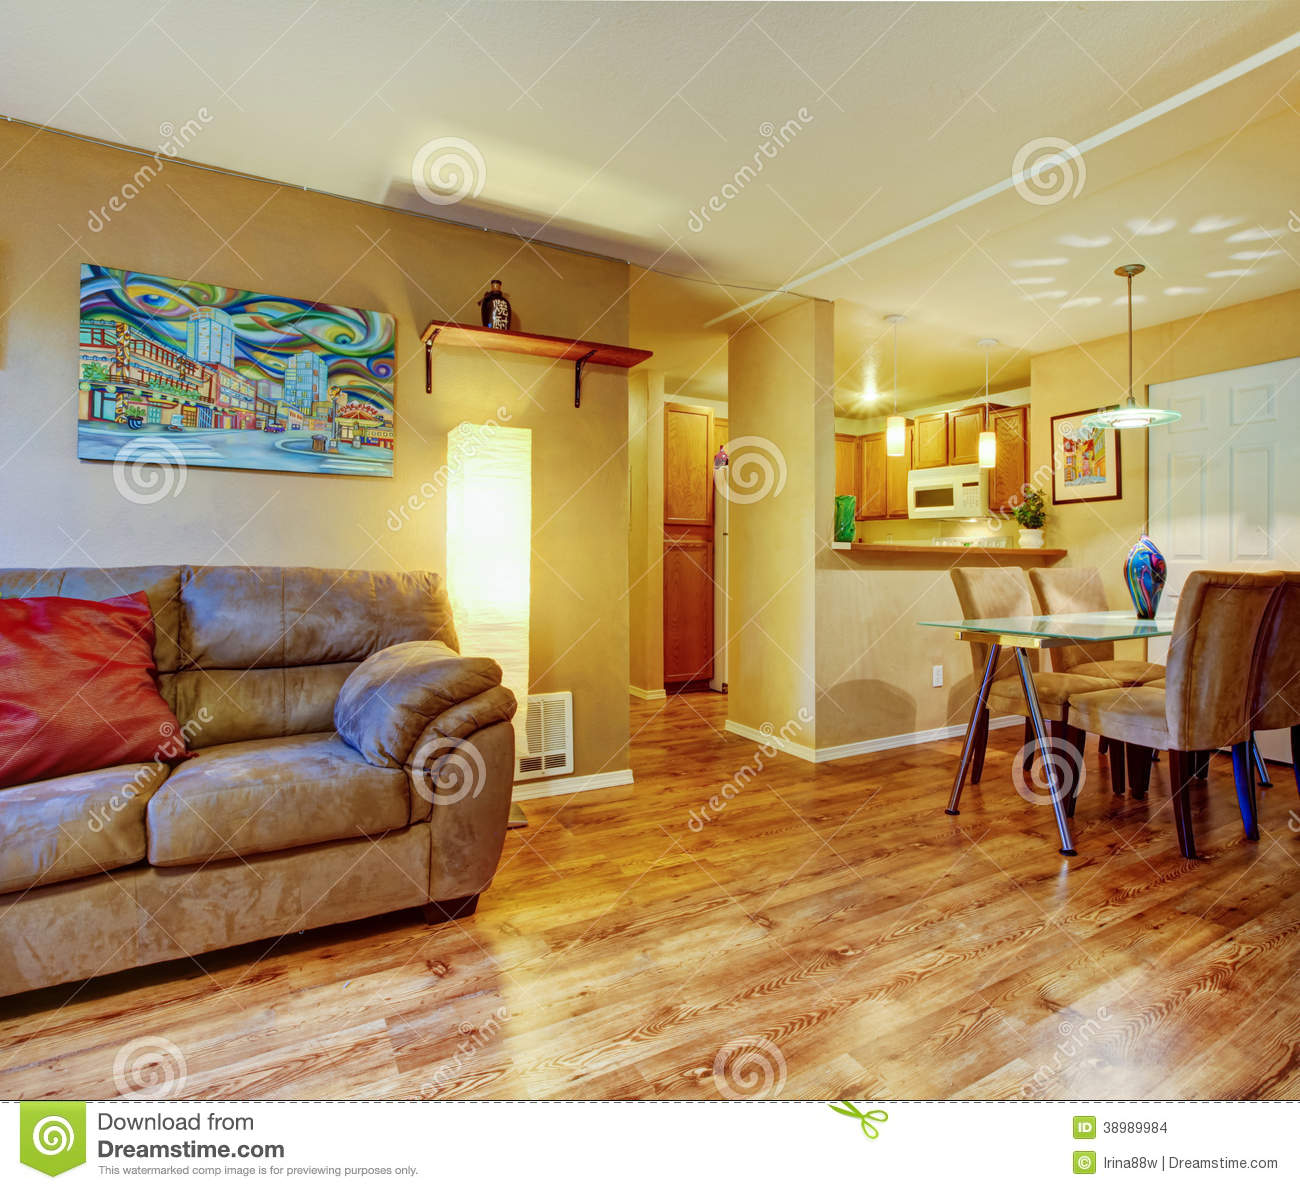 Simple house interior stock photo image 38989984 - Simple house interior living room ...